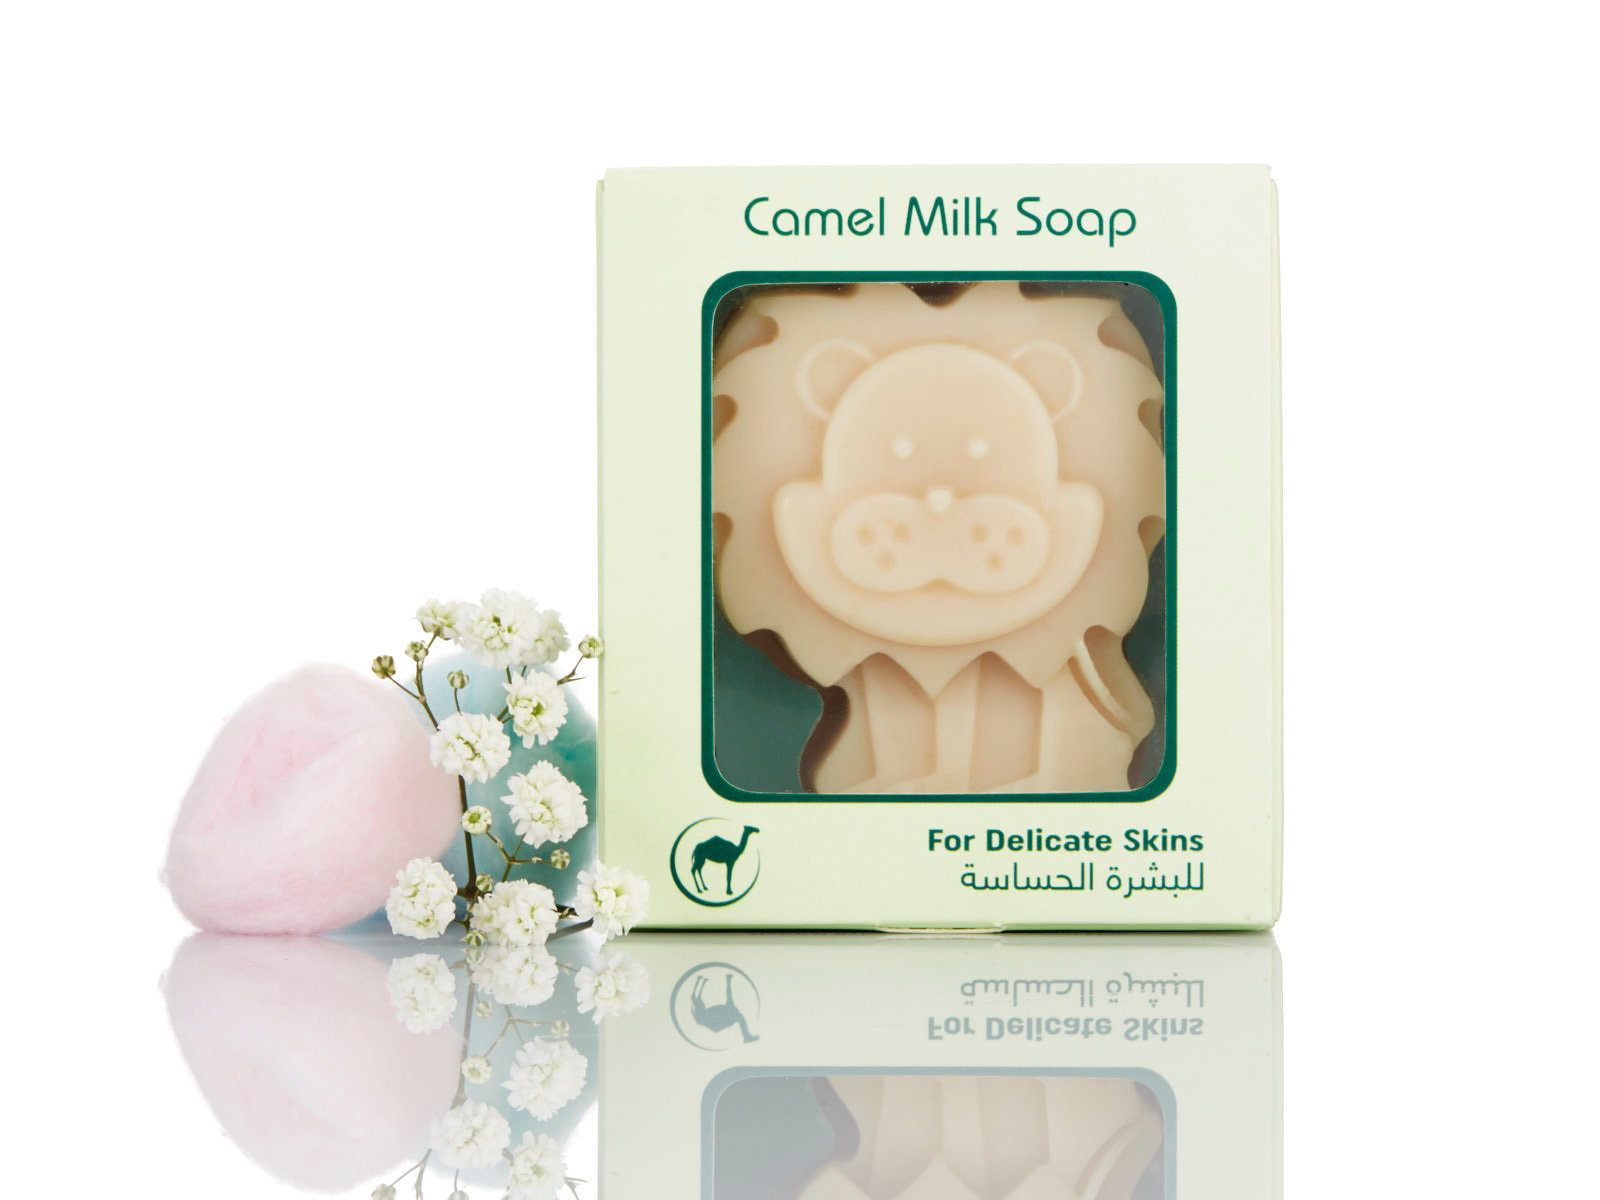 Cucina Bar Soap Cms Sweden Camel Milk Soap Sweden